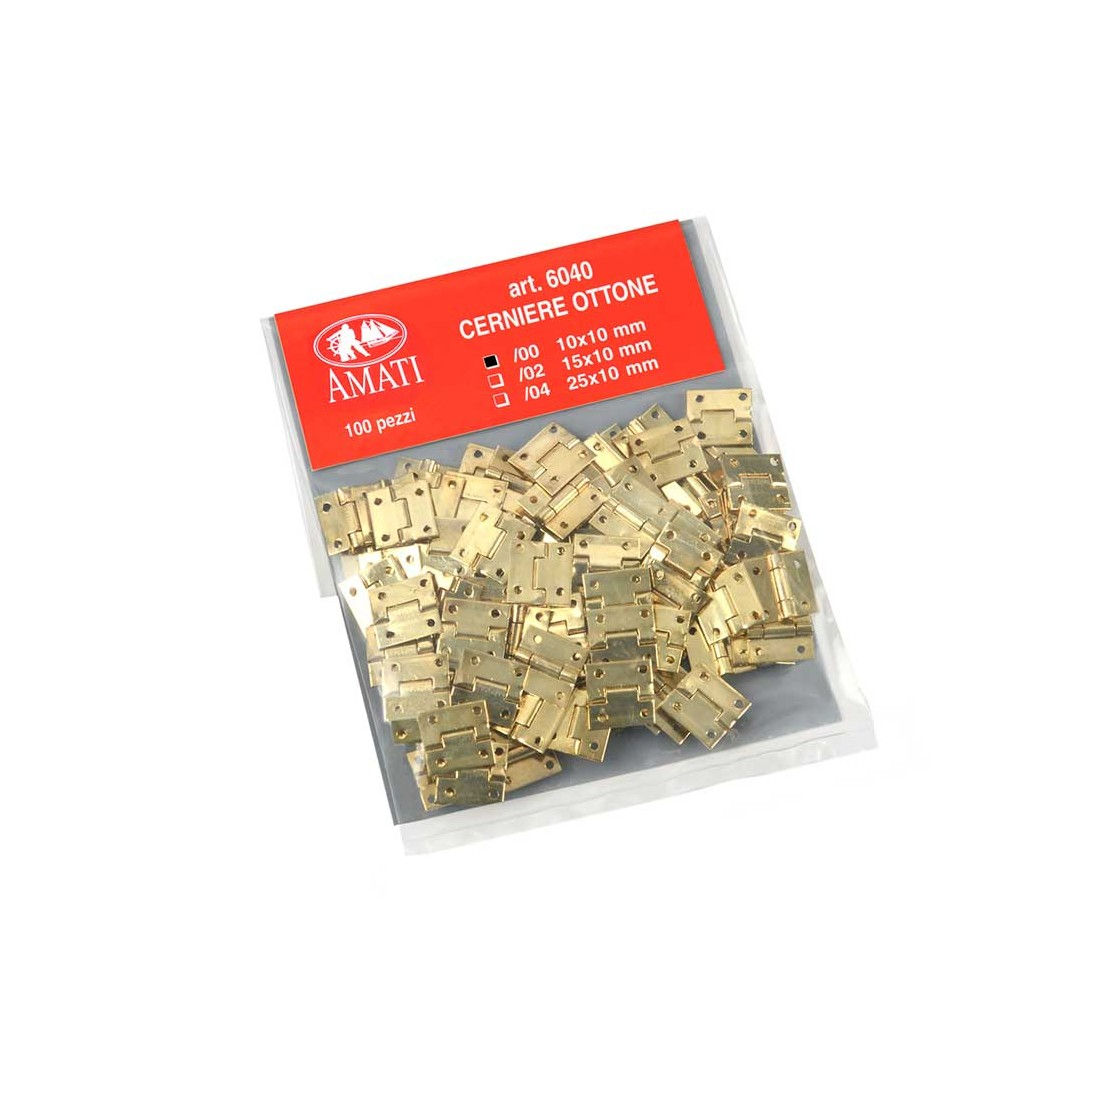 Brass hinges mm. 10x10